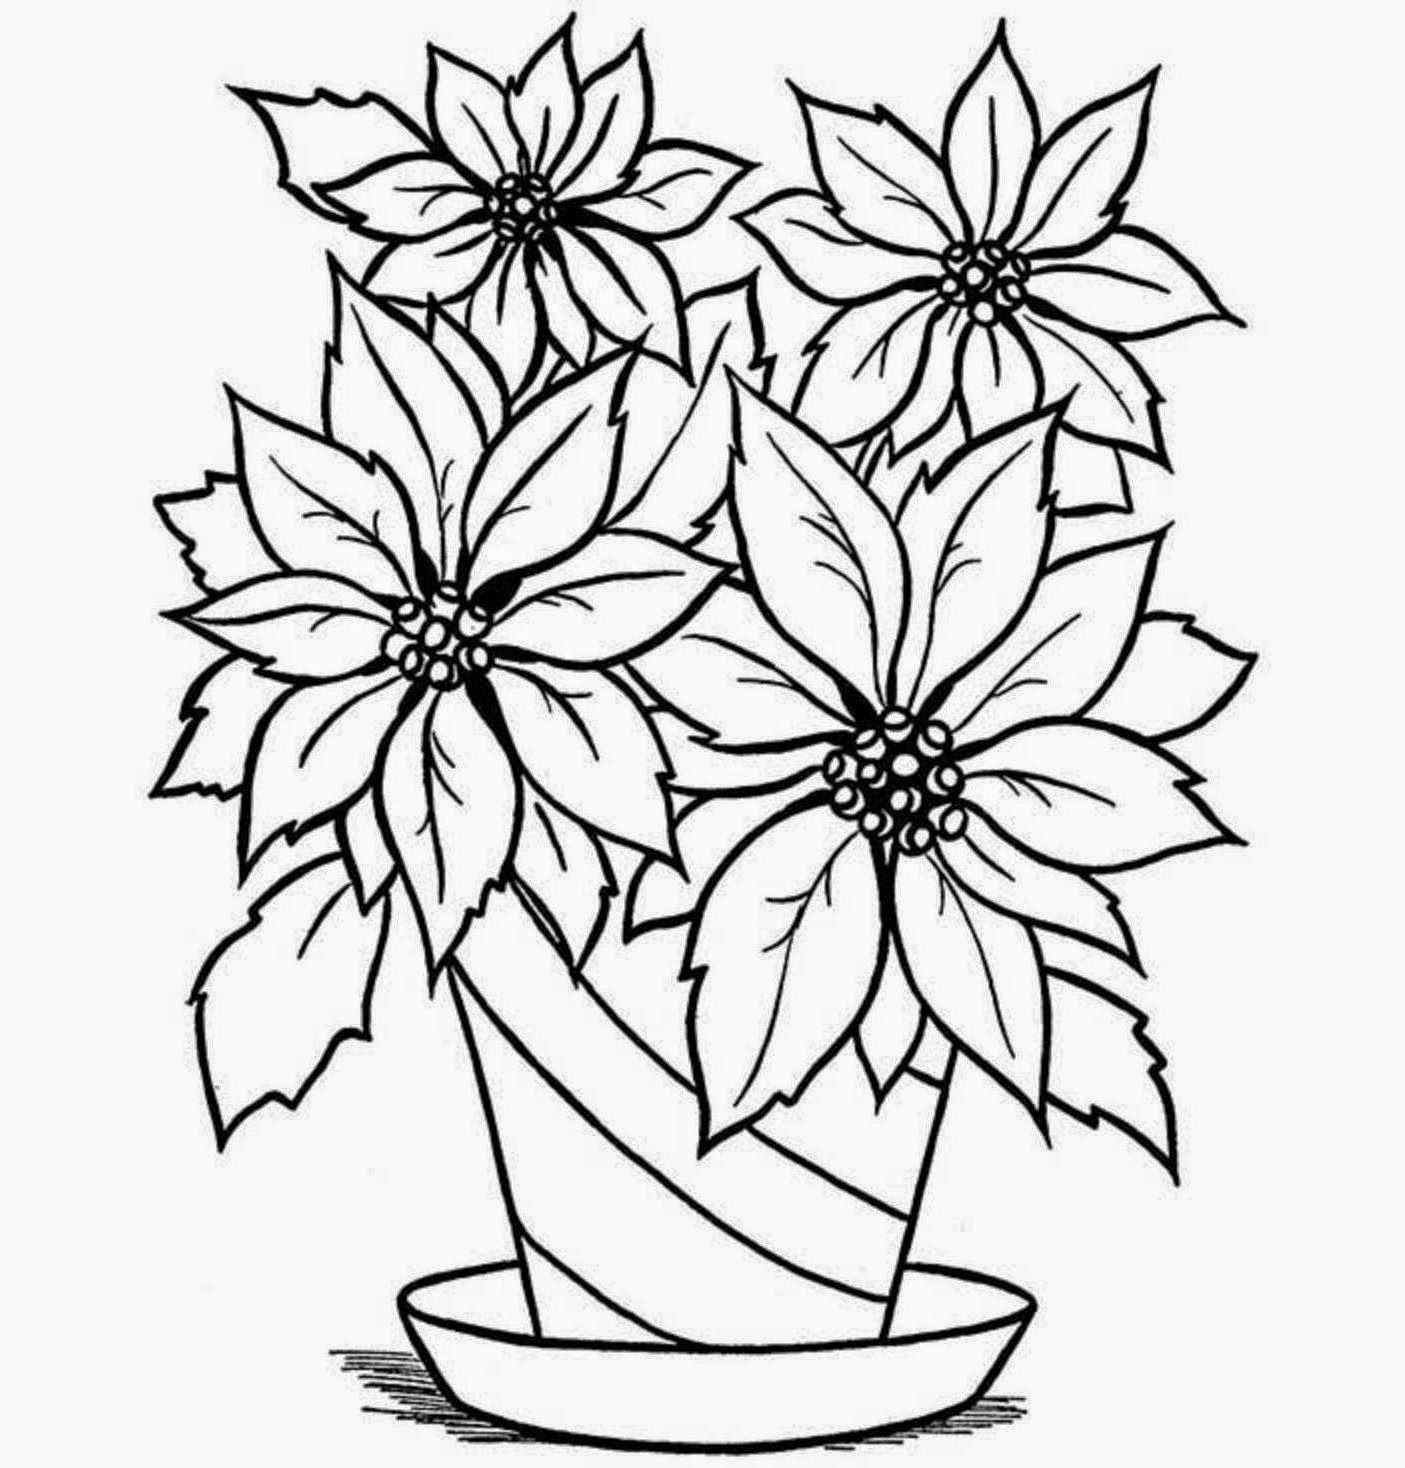 1405x1468 Flower Vase Color Drawing Flowers Vase Coloring Drawing Free